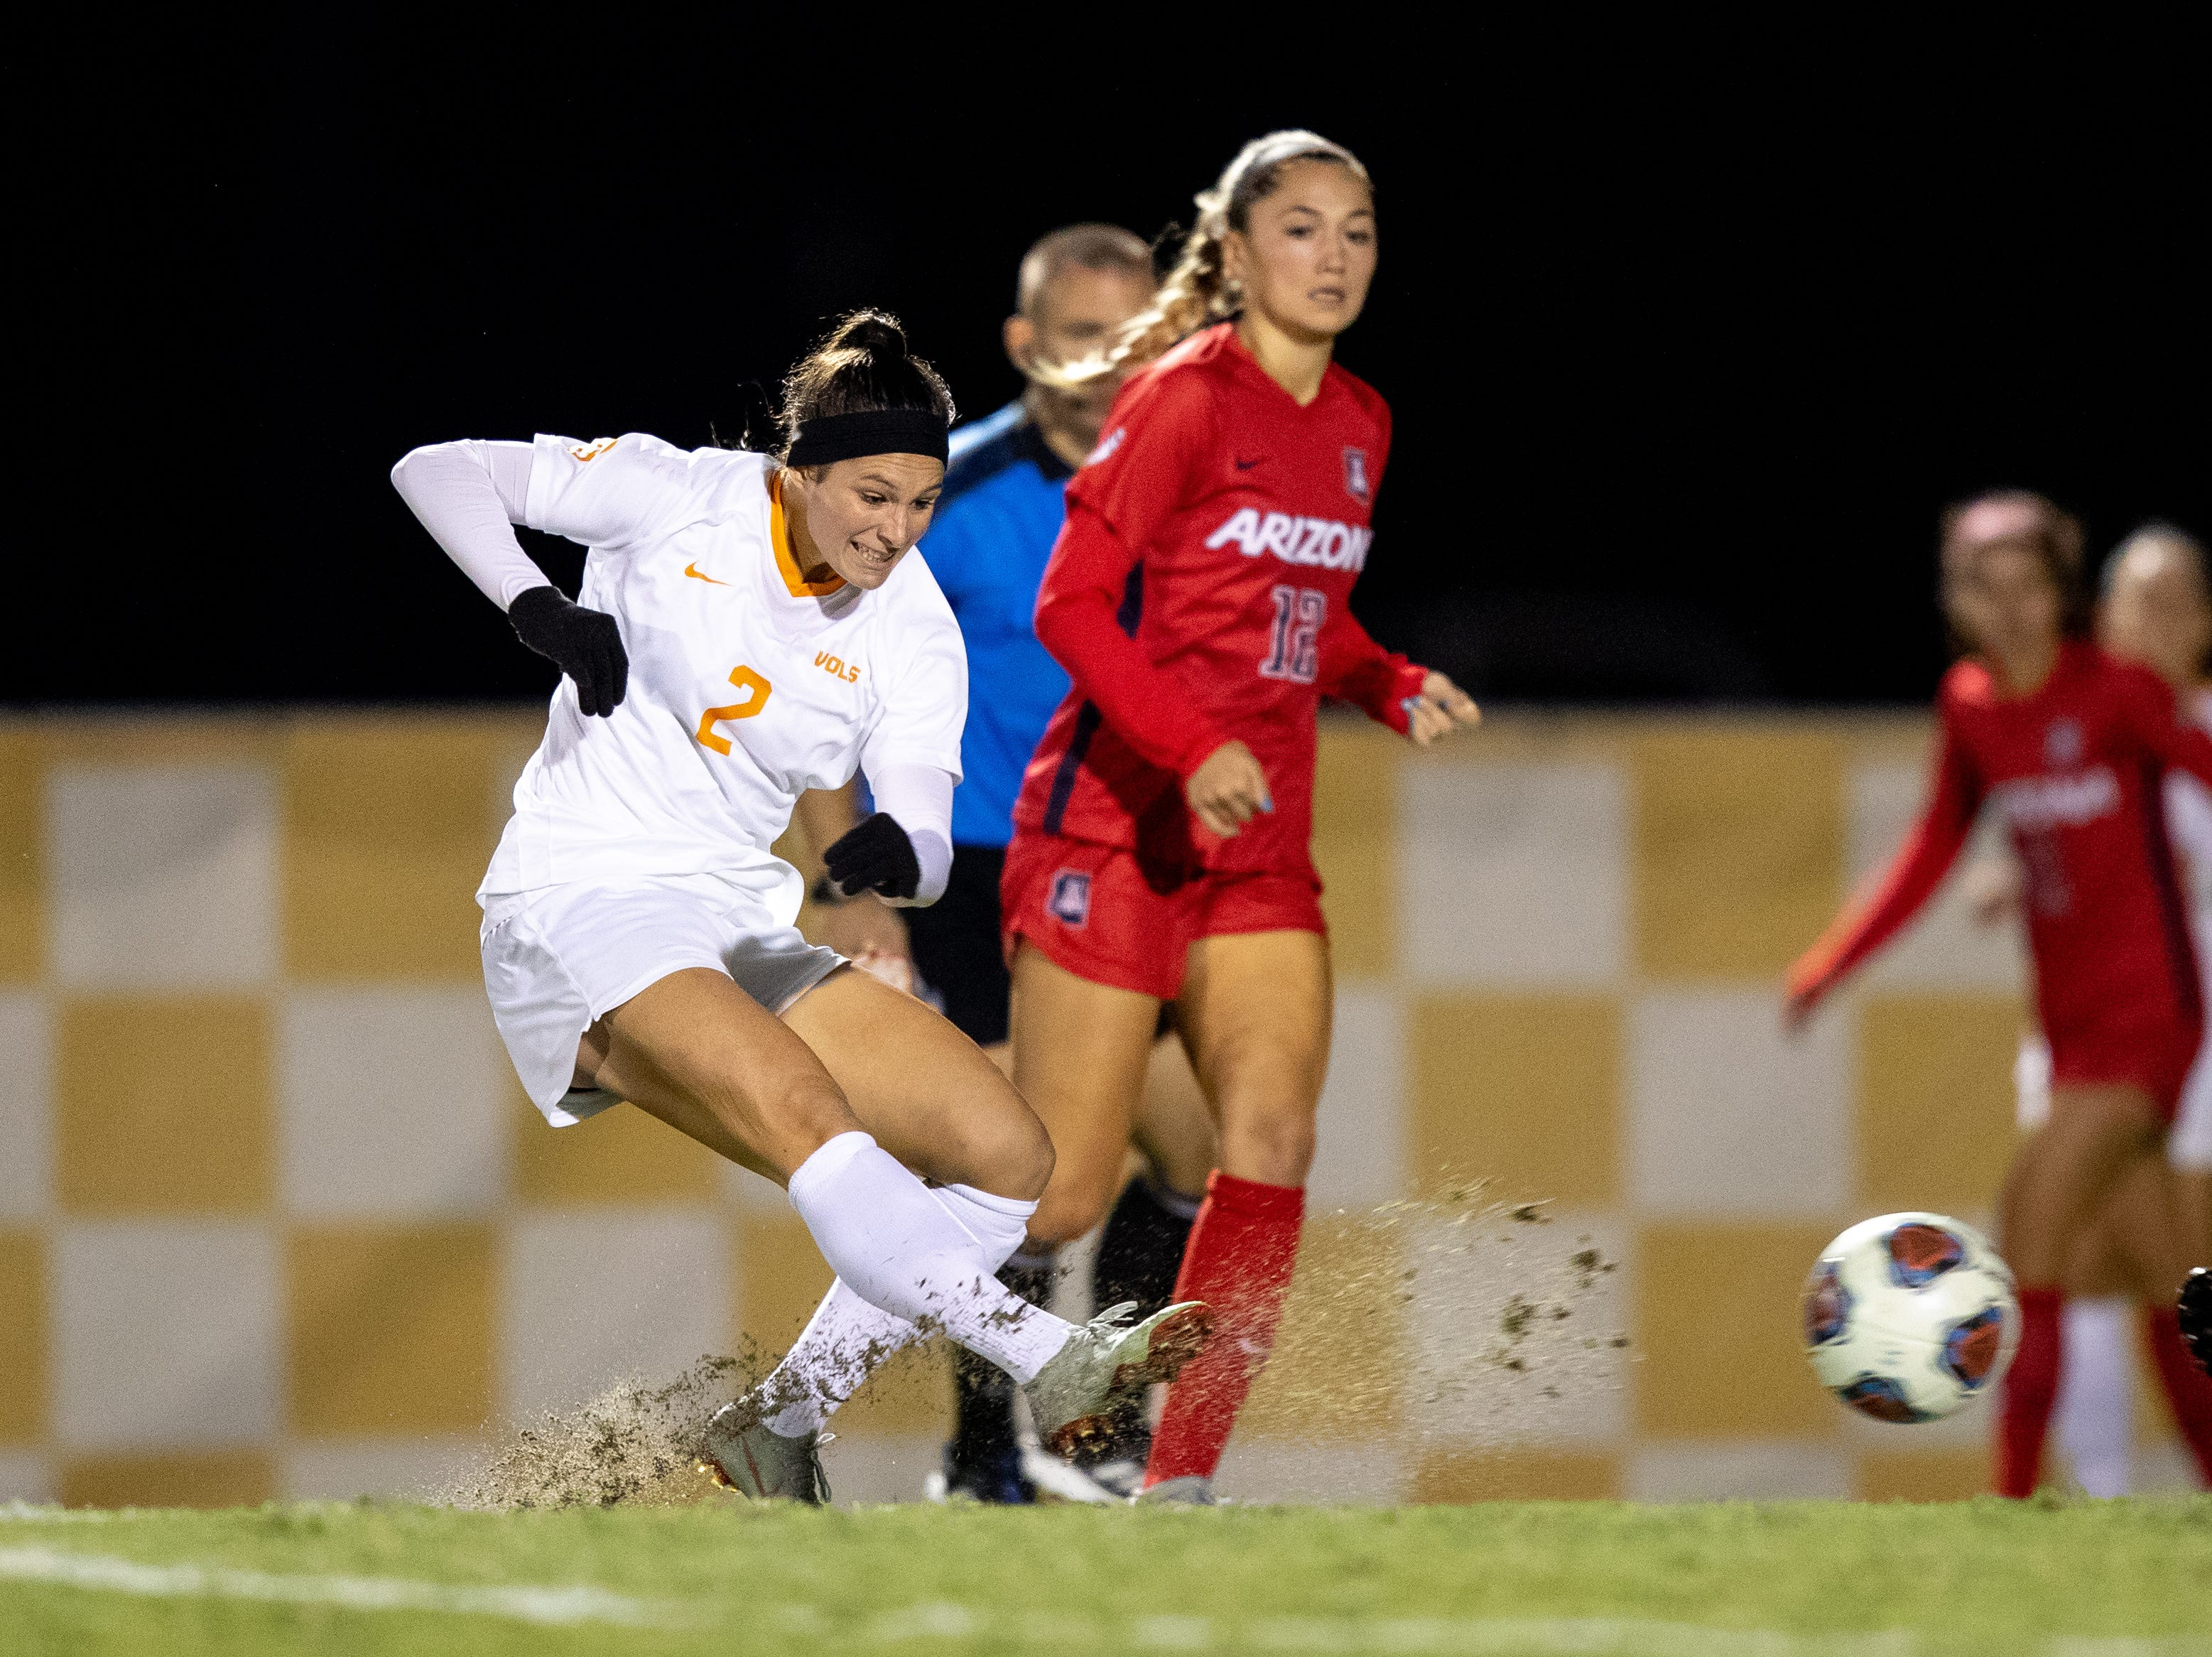 Danielle Marcano scores a goal against Arizona in the second round of the NCAA women's soccer tournament on Friday, Nov. 16, 2018 at Regal Stadium in Knoxville, Tenn.